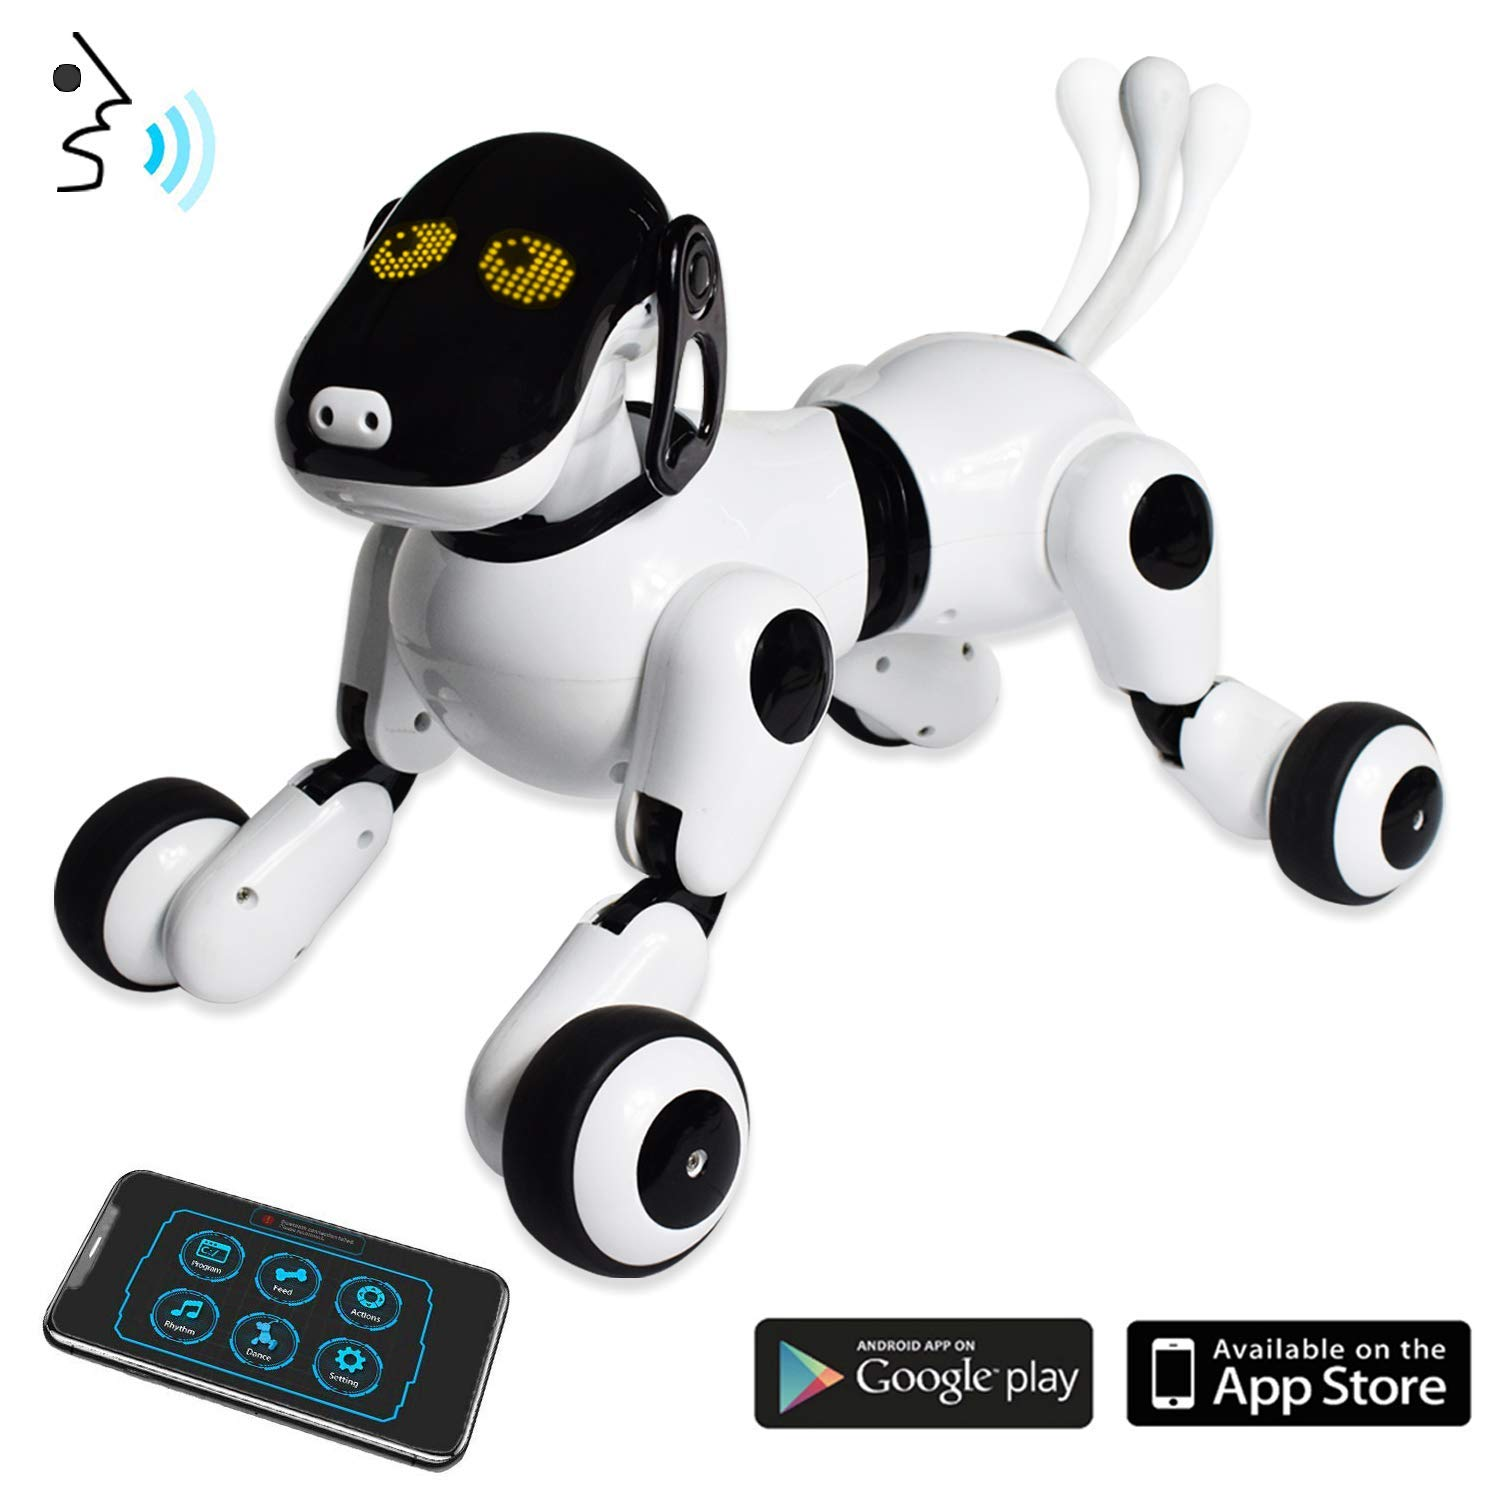 Puppy Smart Voice & App Controlled Kids Robot Dog Toy | Interactive, Dances, Sings, Plays Music w/ Touch Motion Control for Boys & Girls